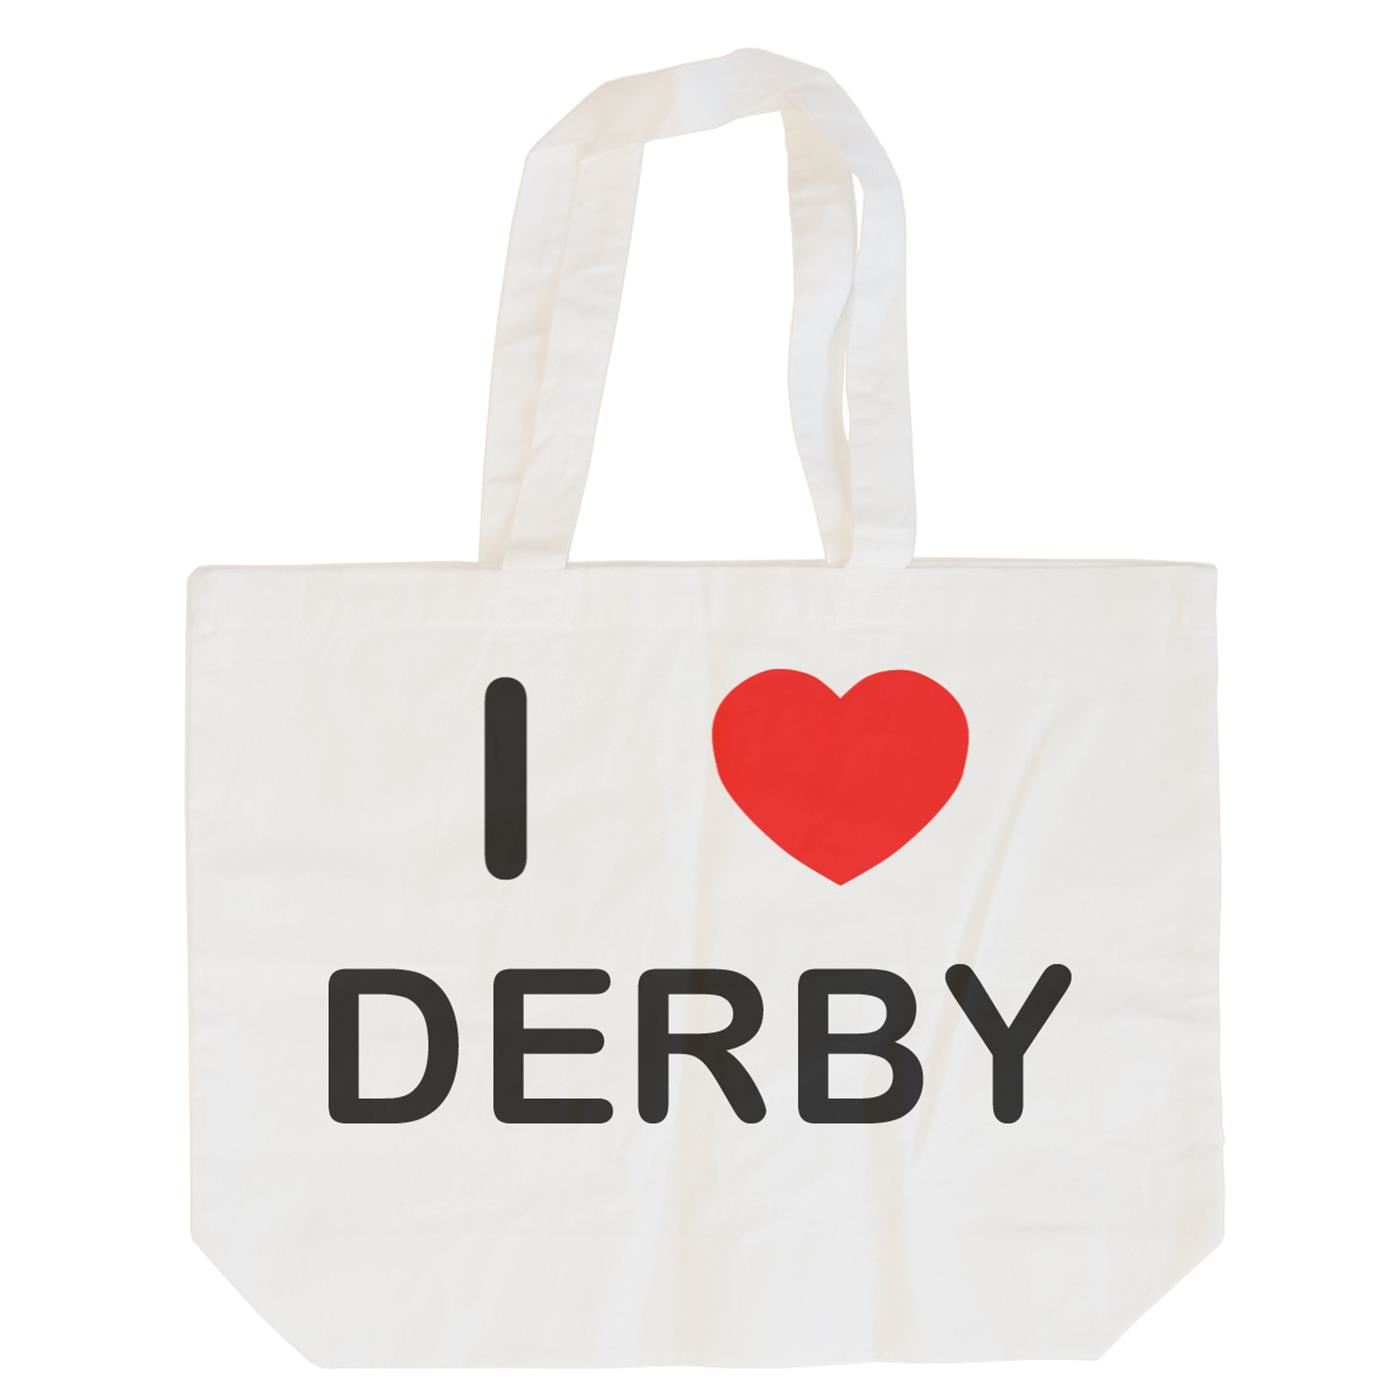 I Love Derby - Cotton Bag | Size choice Tote, Shopper or Sling